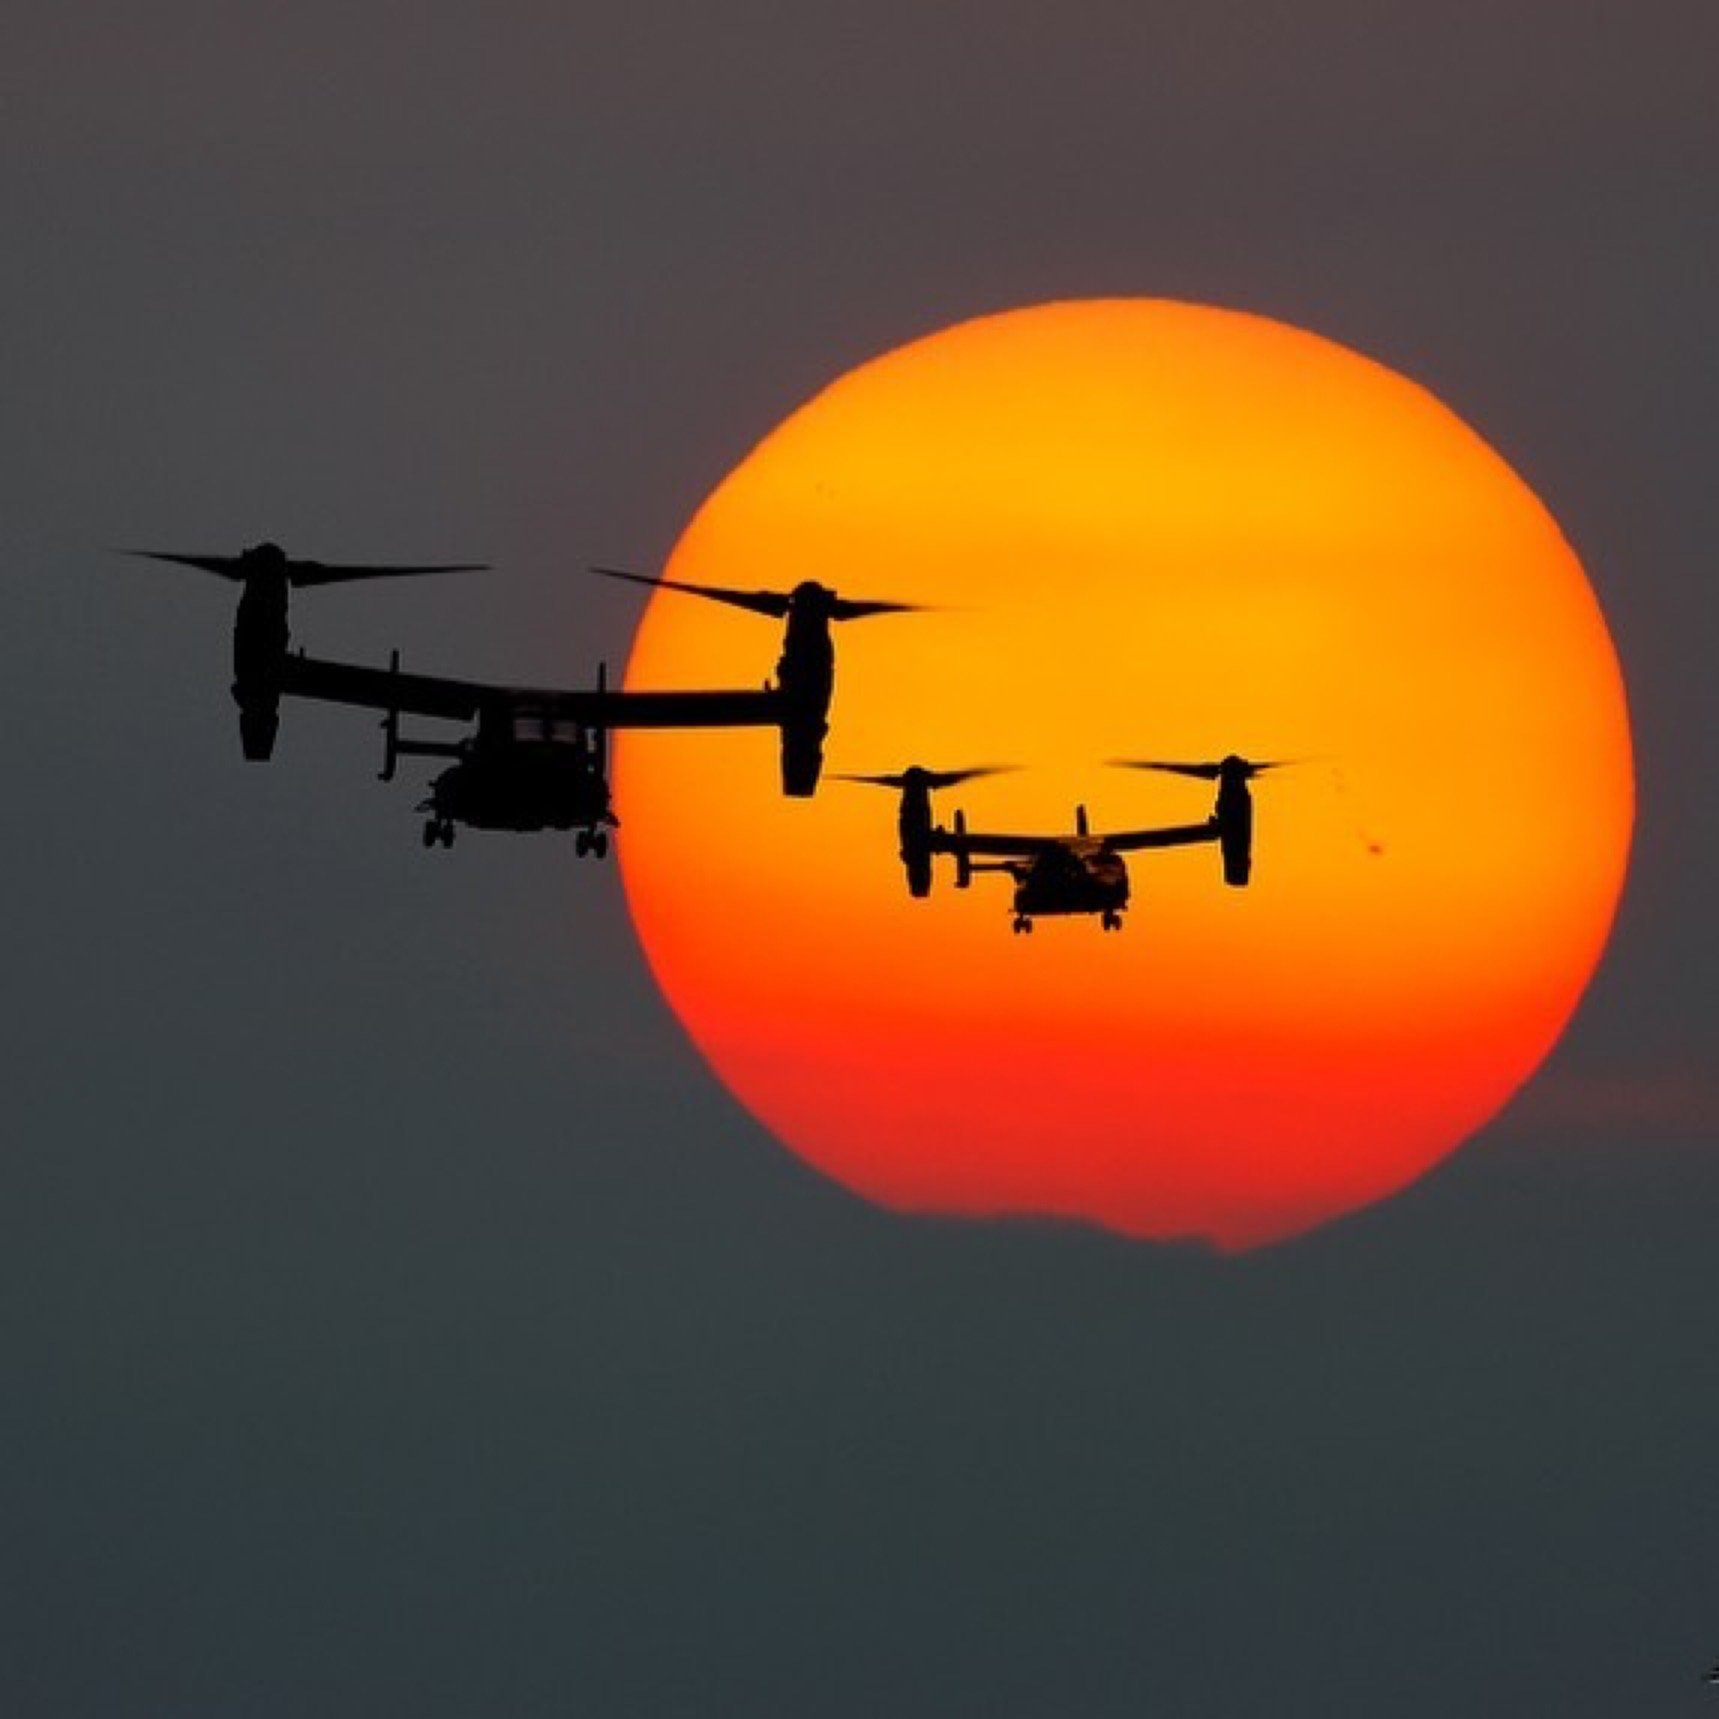 Two CV-22 Ospreys from Royal Air Force base Mildenhall fly at sunset. Photo shared by Nigel Blake